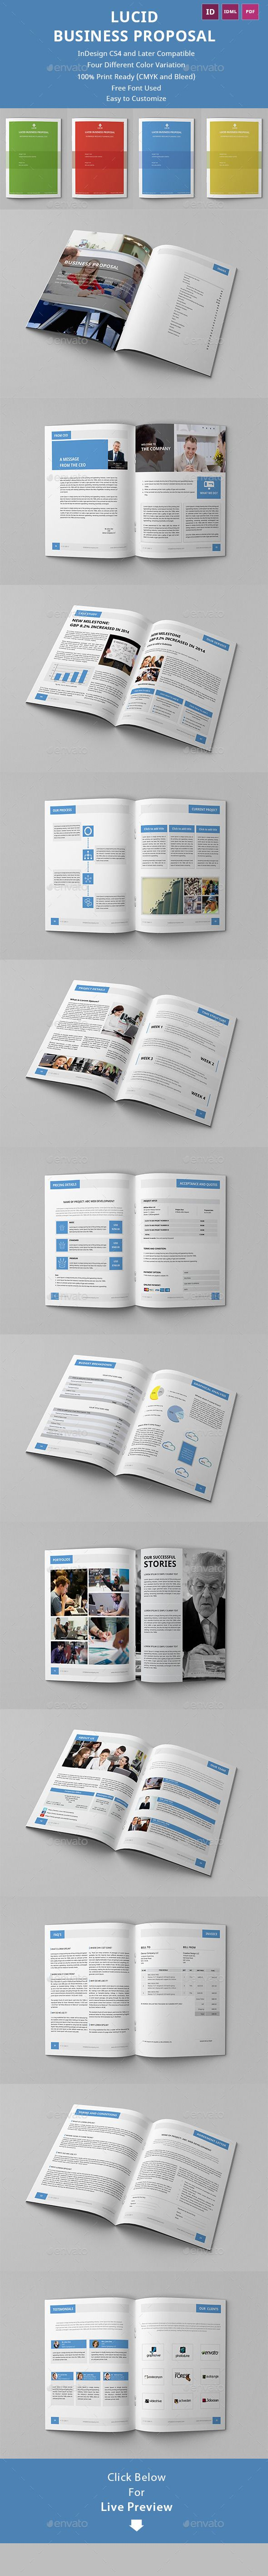 Lucid Business Proposal Template Business Proposal Business Proposal Template Proposal Templates